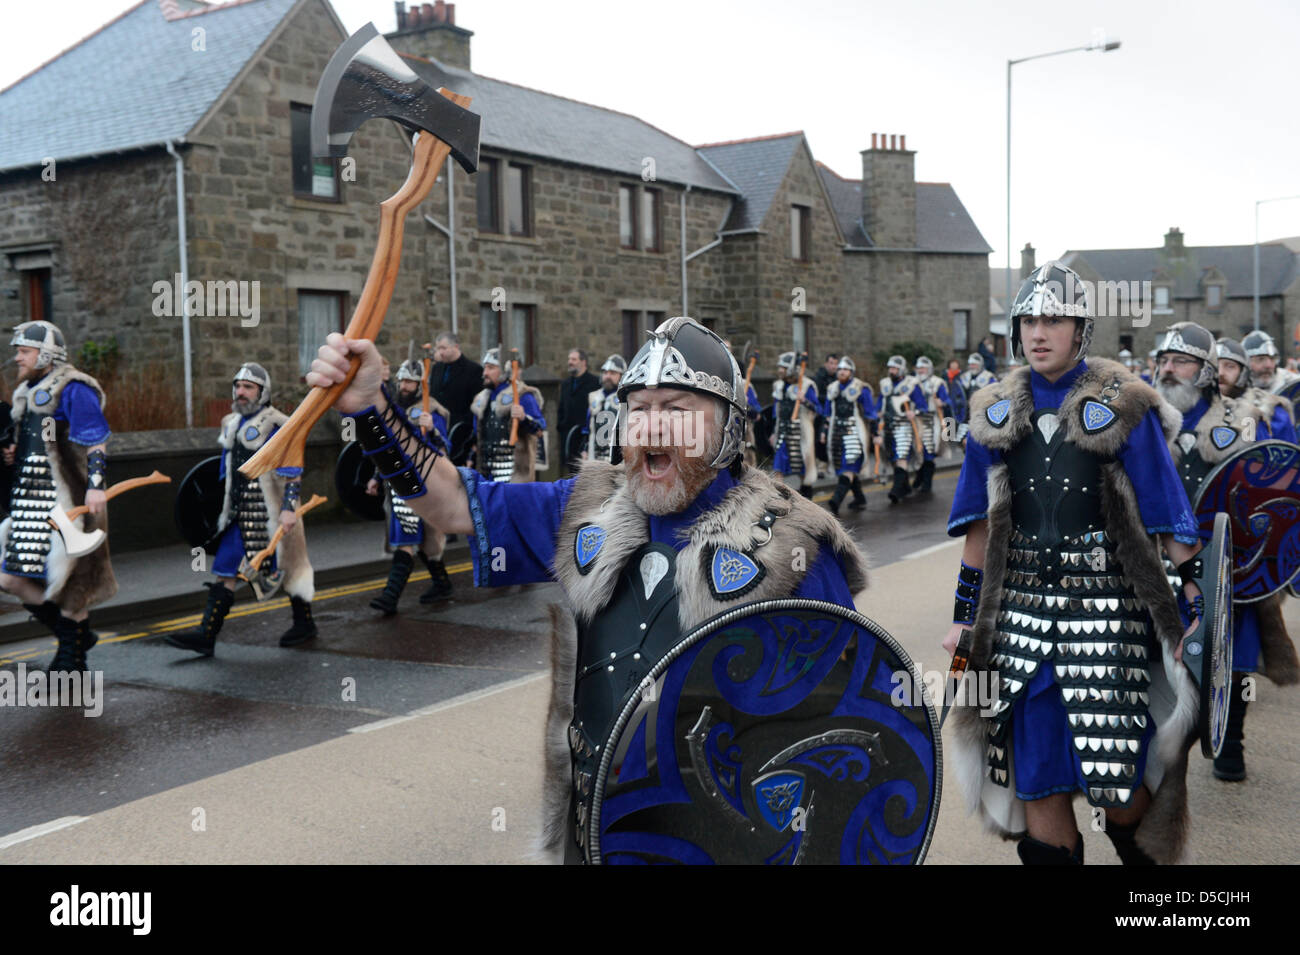 Up Helly Aa 2013 Europe's largest fire festival held in Lerwick the capital of Shetland Scotland UK - Stock Image